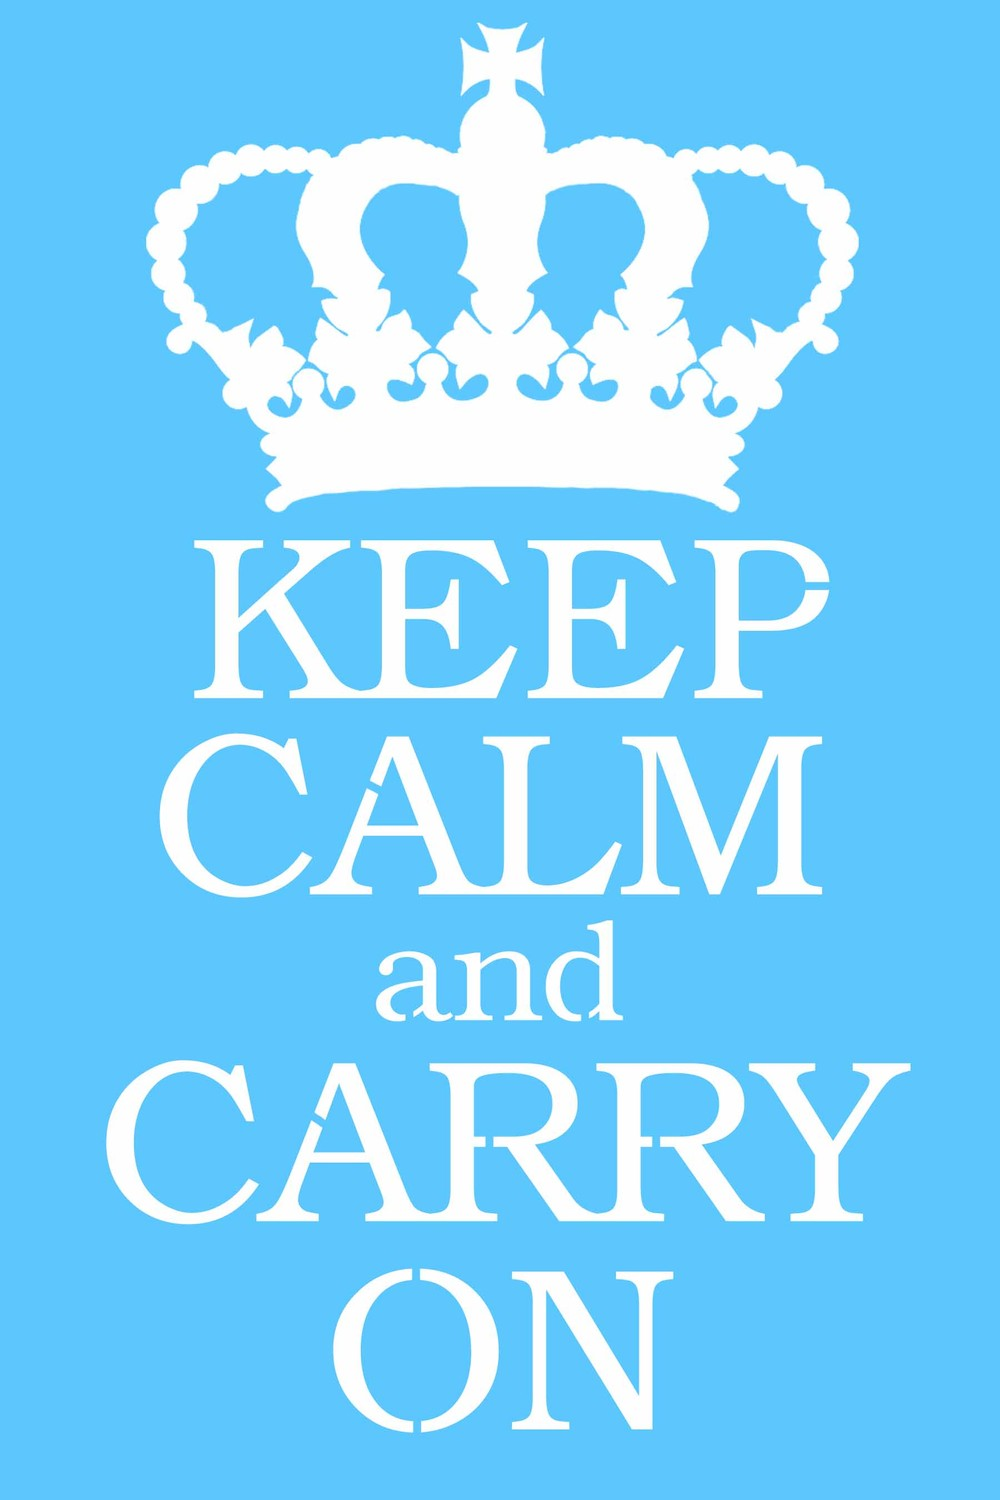 Keep Calm Stock Photos, Images, & Pictures | Shutterstock |Keep Calm And Carry On Crown Vector